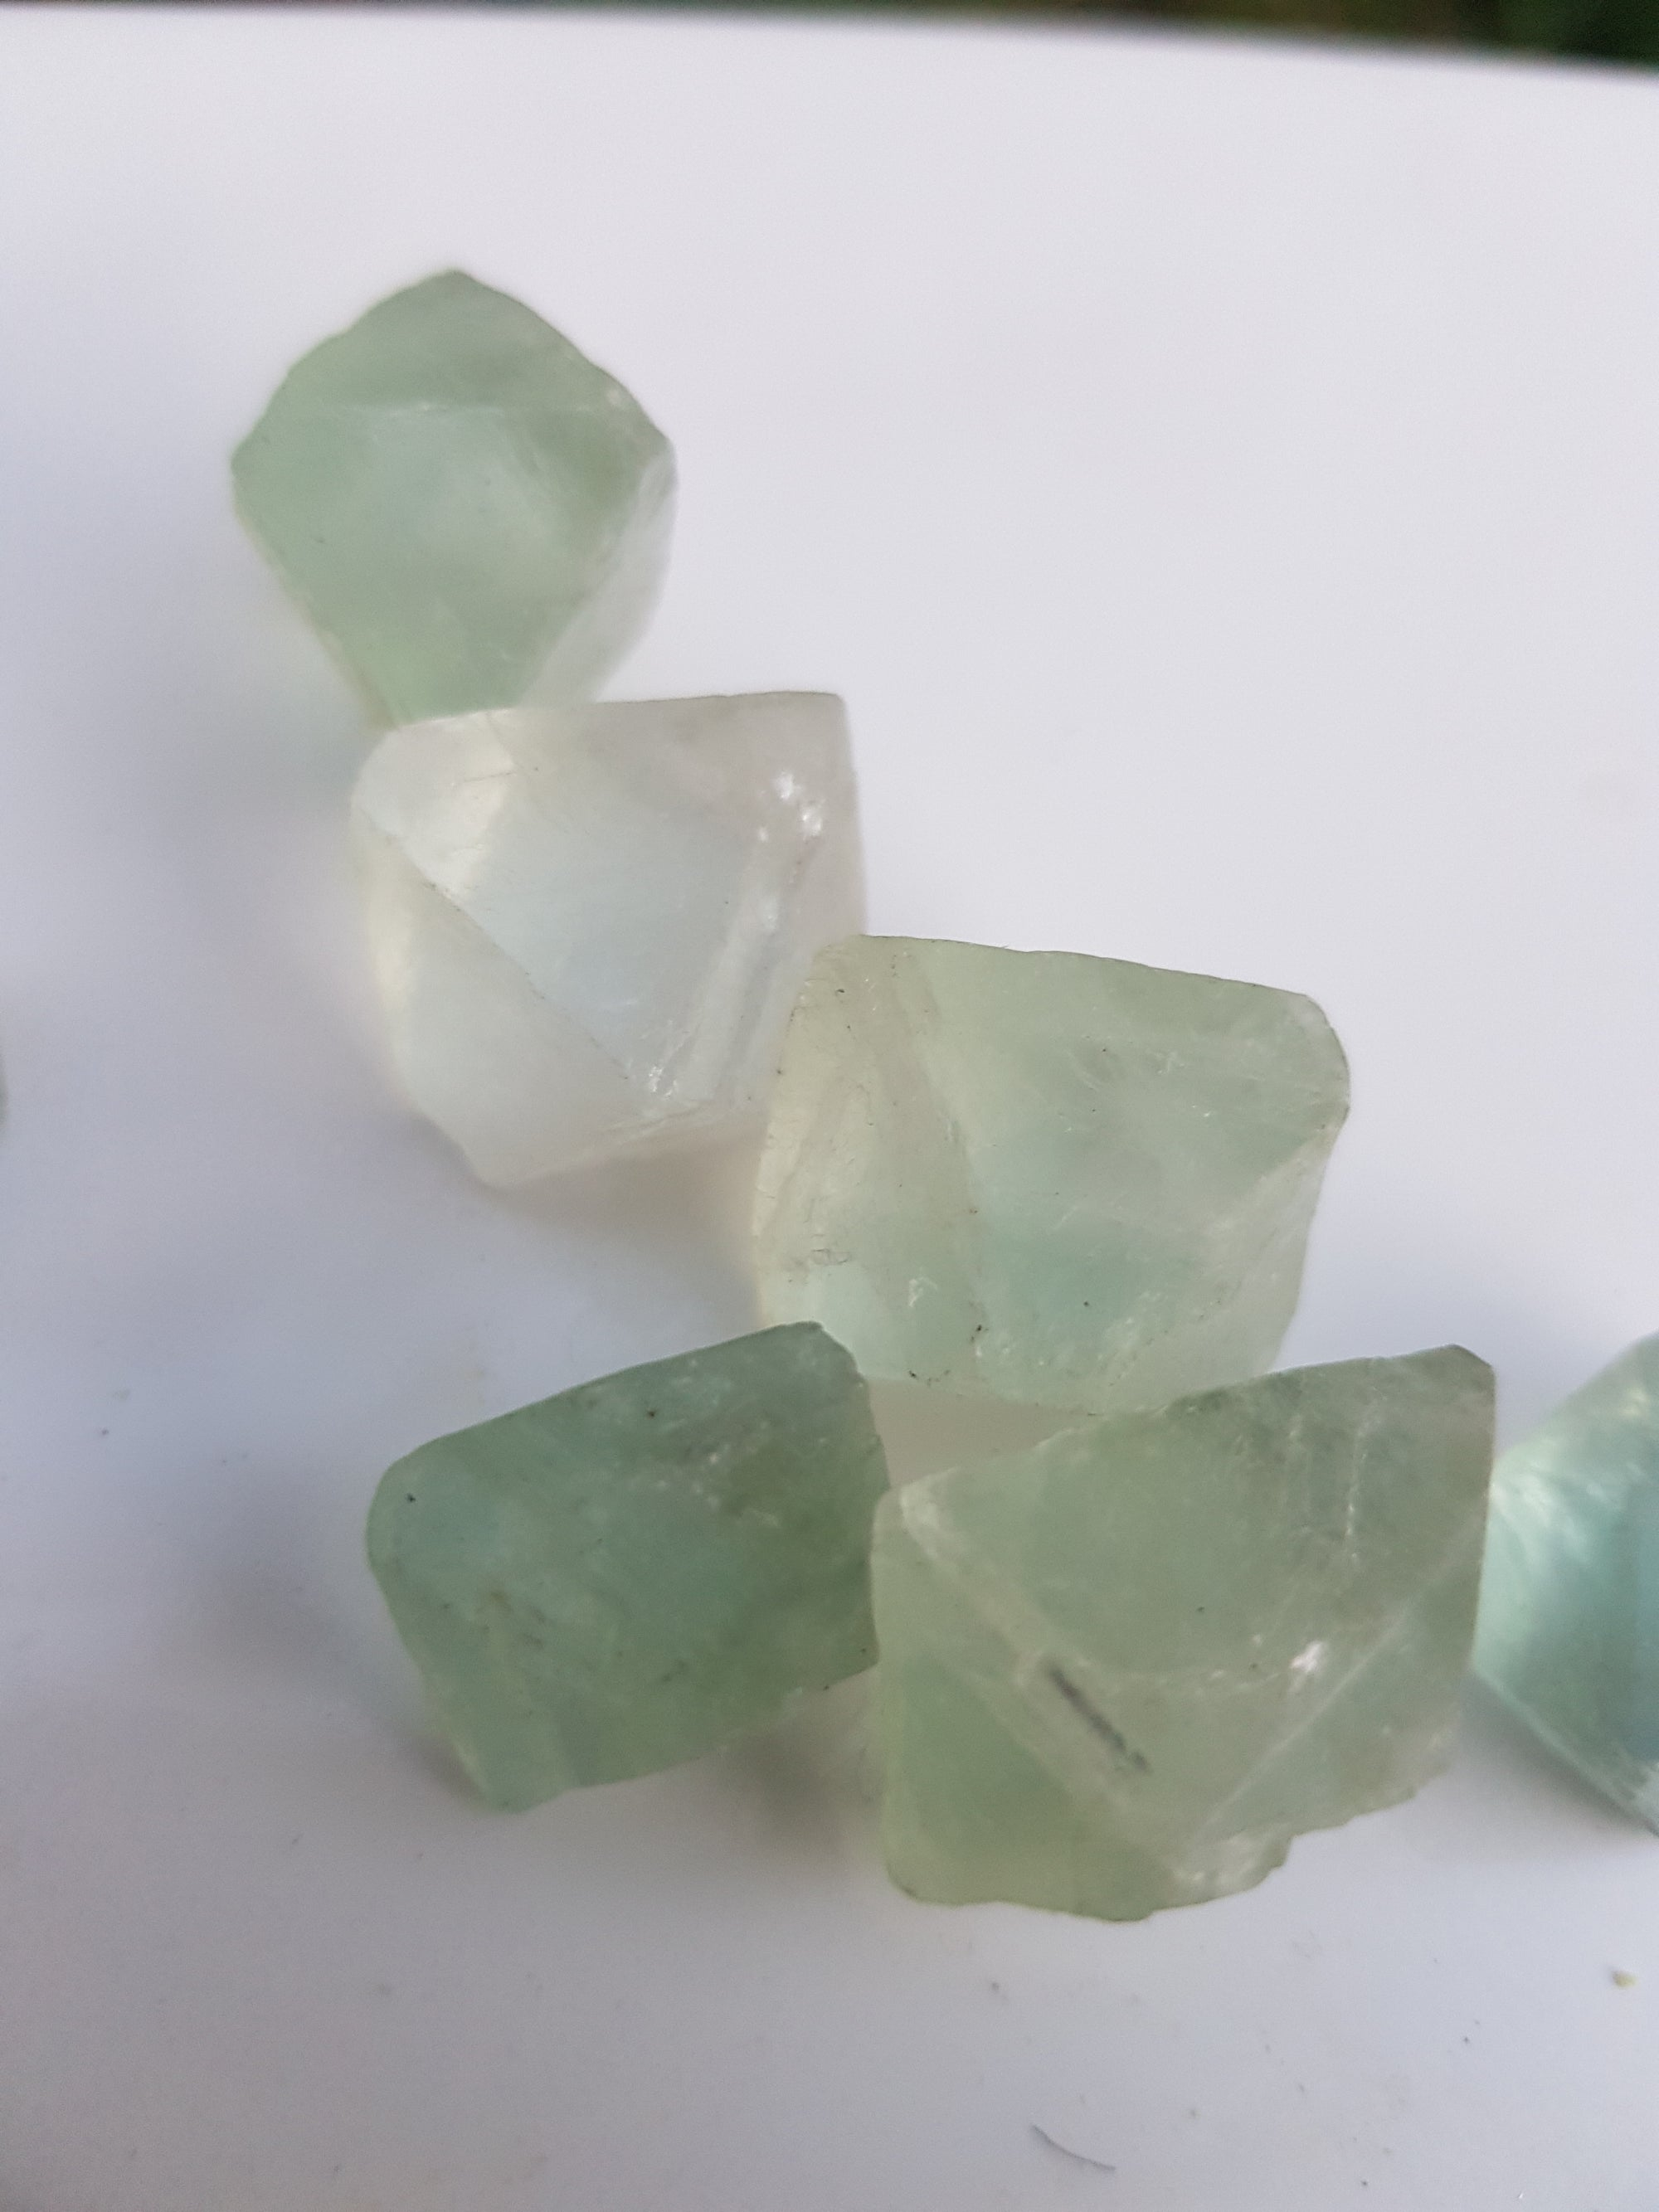 Fluorite octohedron - The Science of Magic